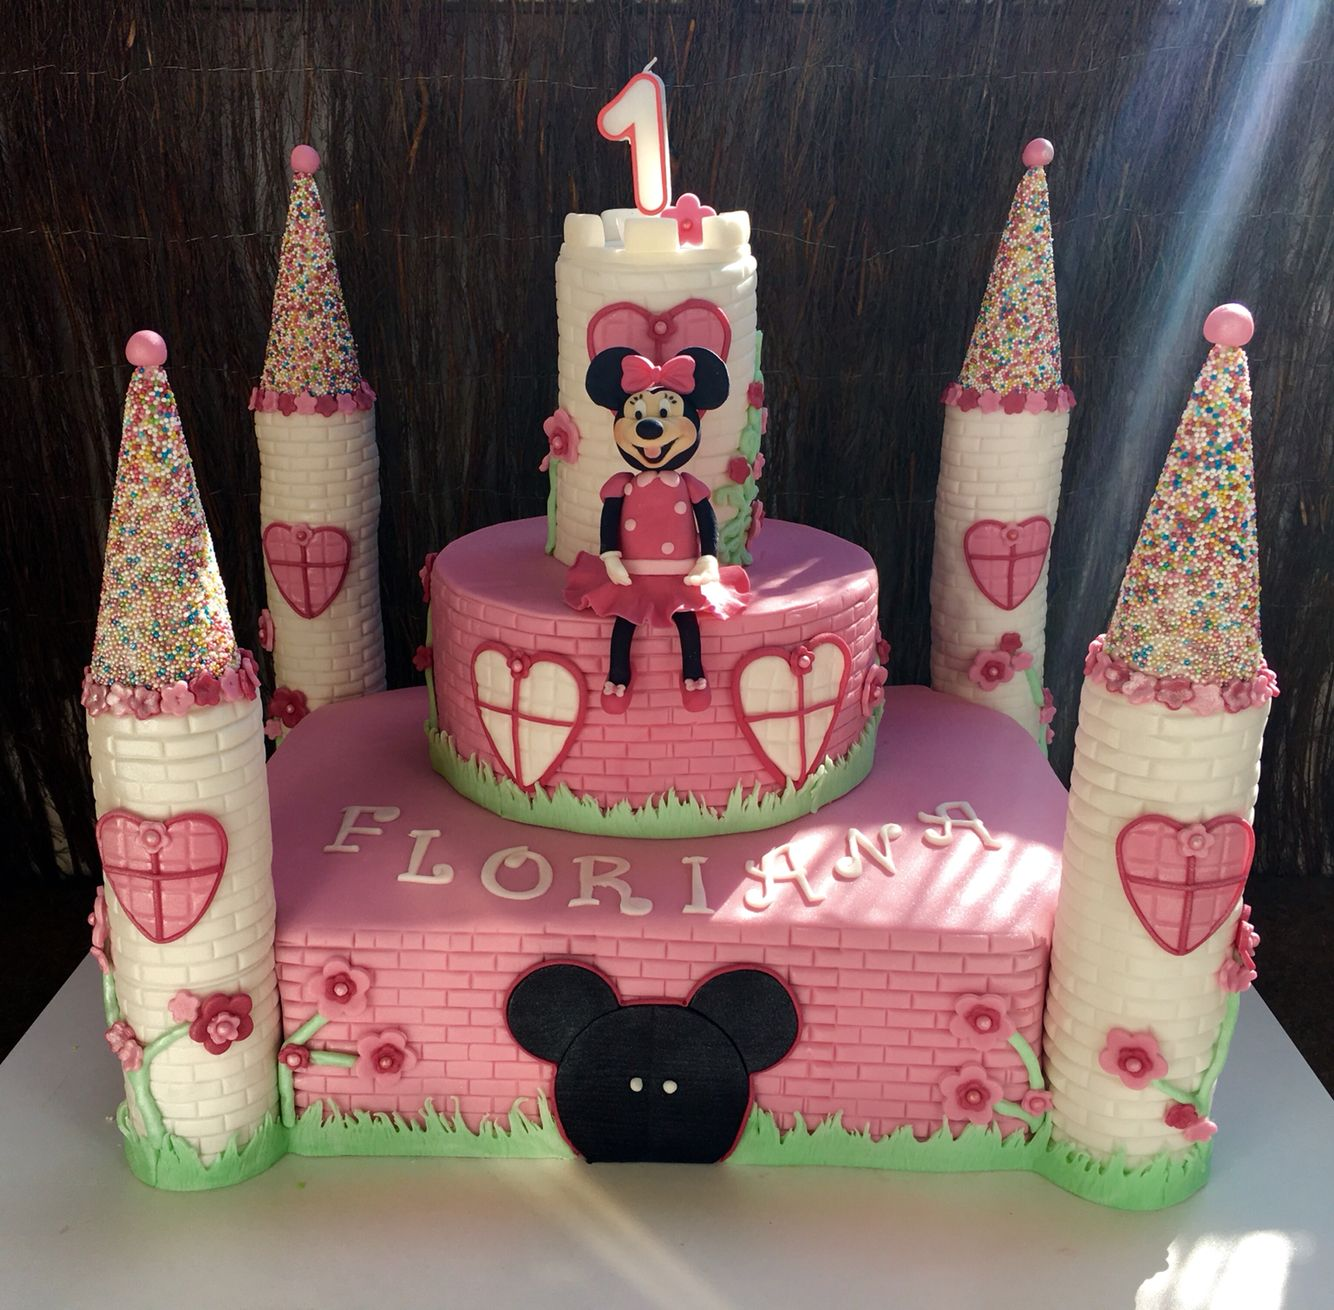 Schloss Torte Minnie Mouse Cumple Irianys Torten